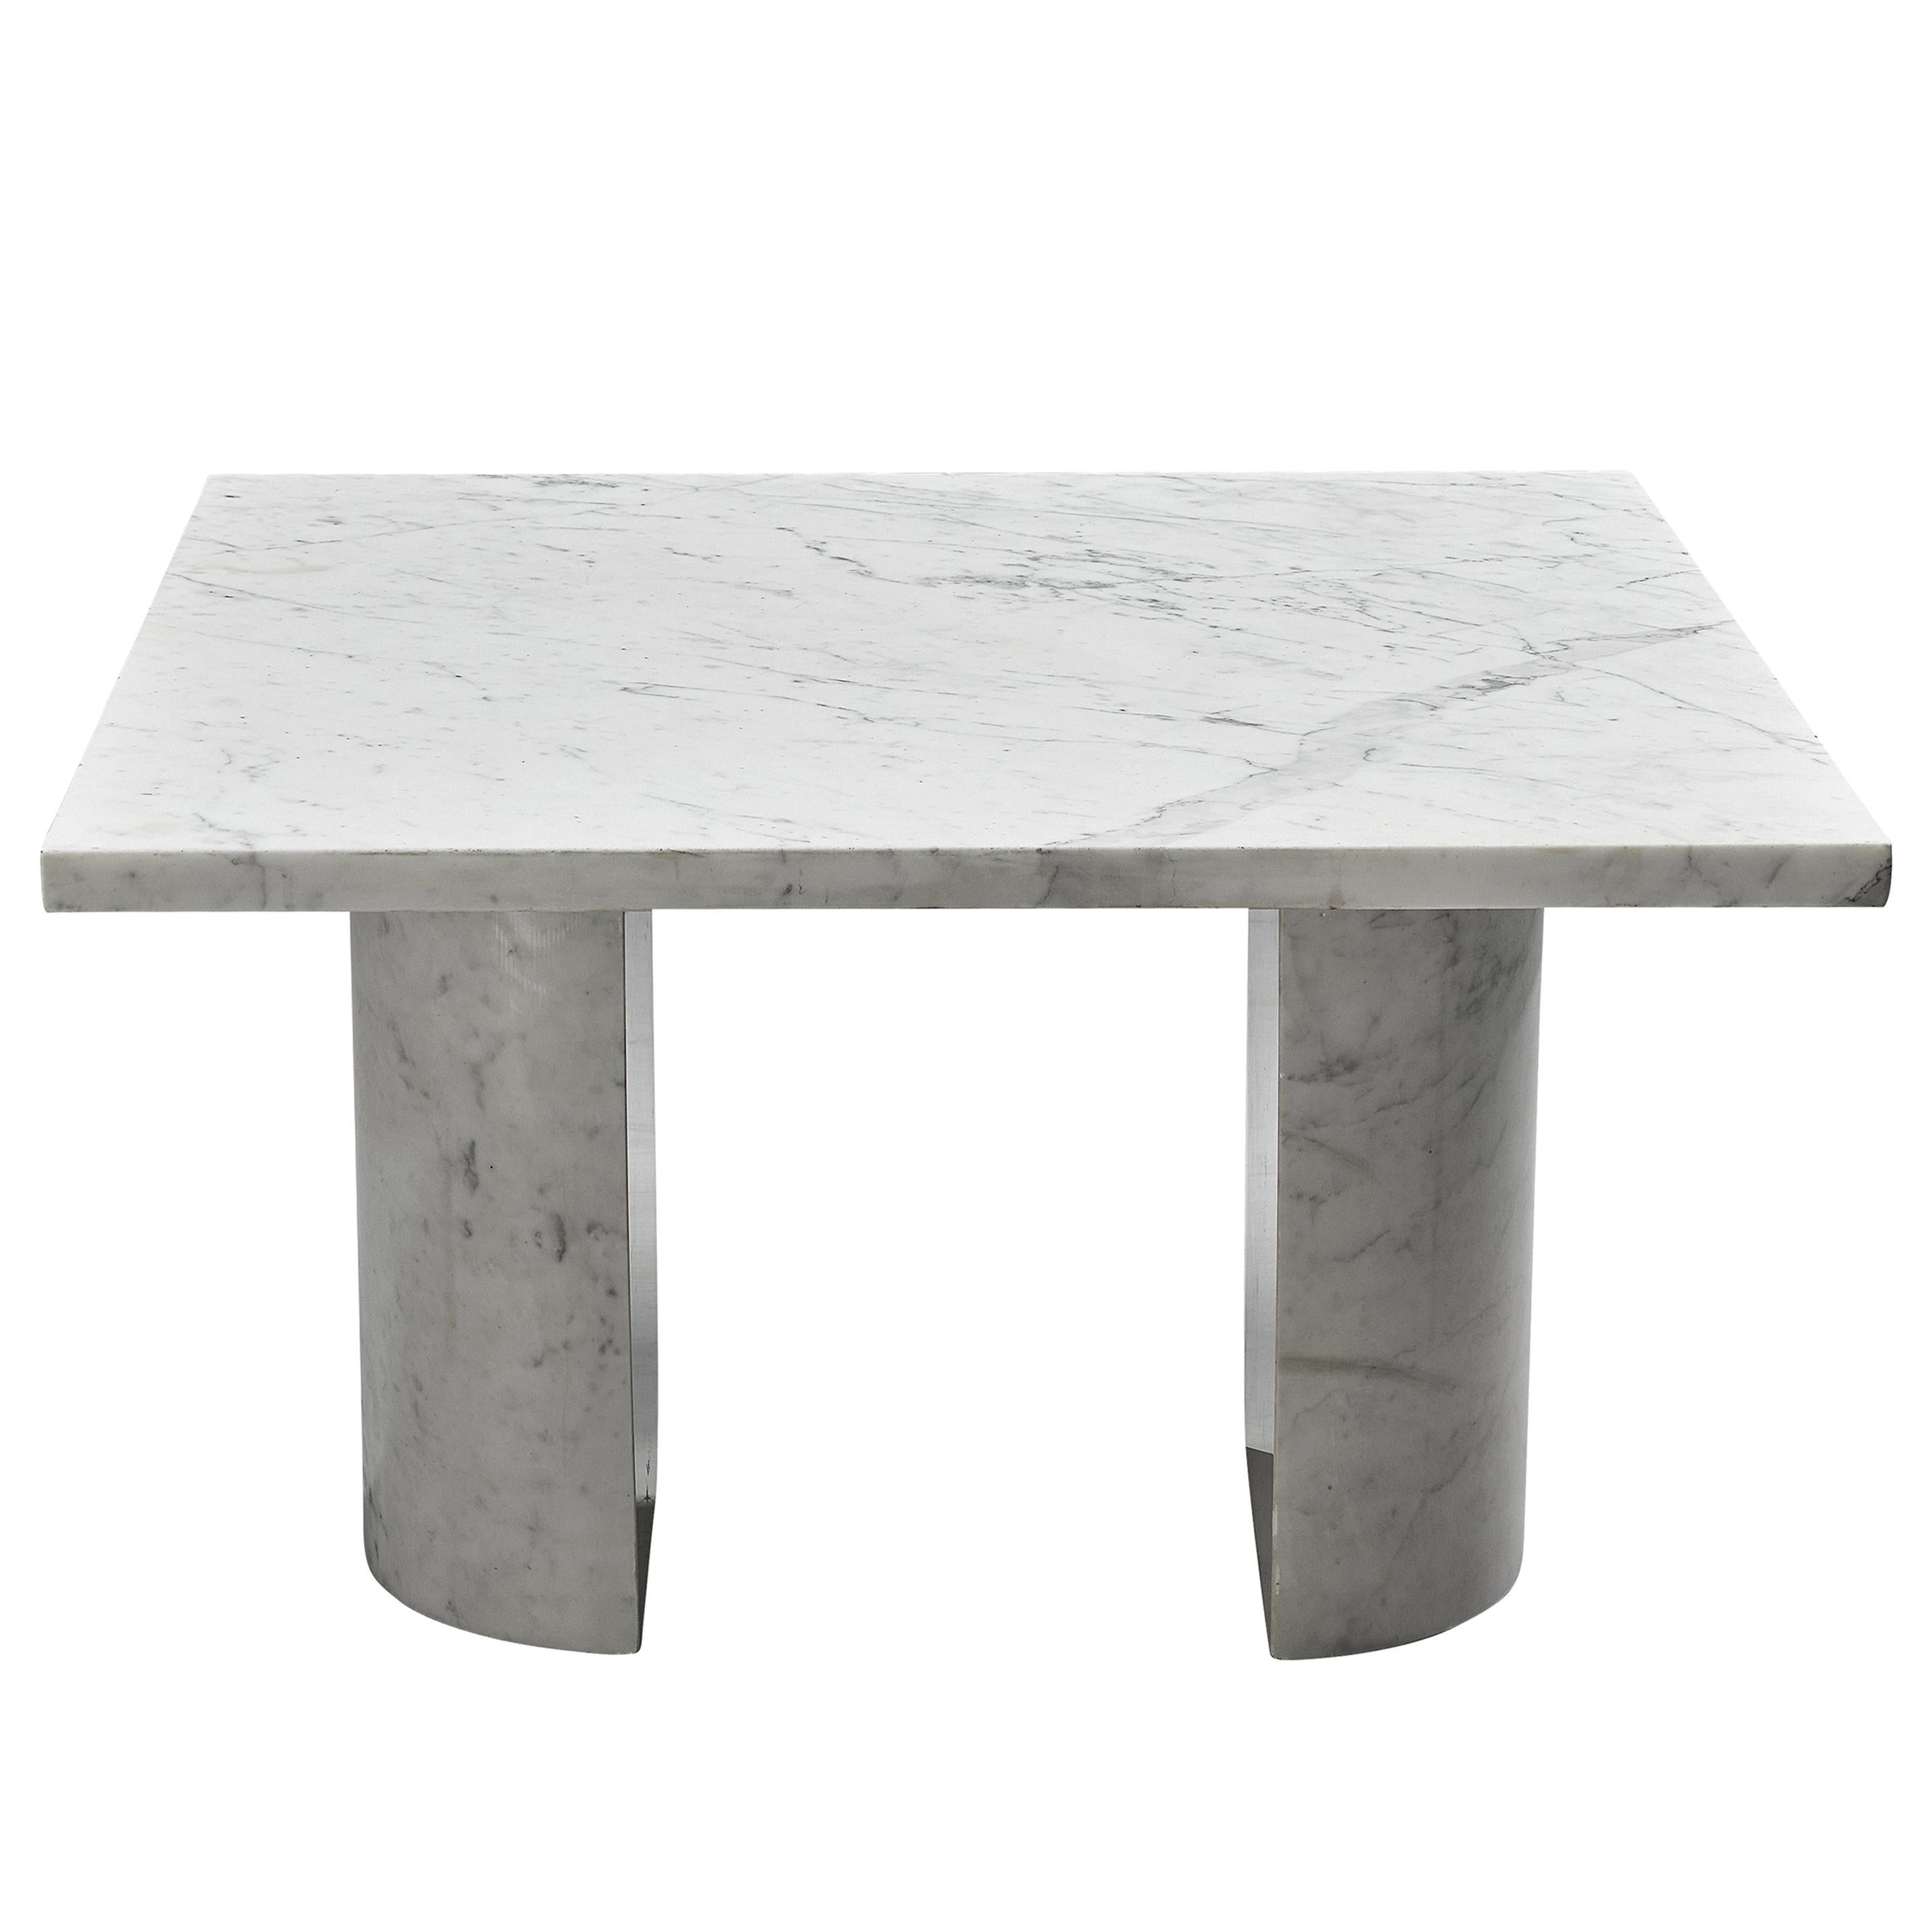 Architectural Coffee Table in Carrara Marble